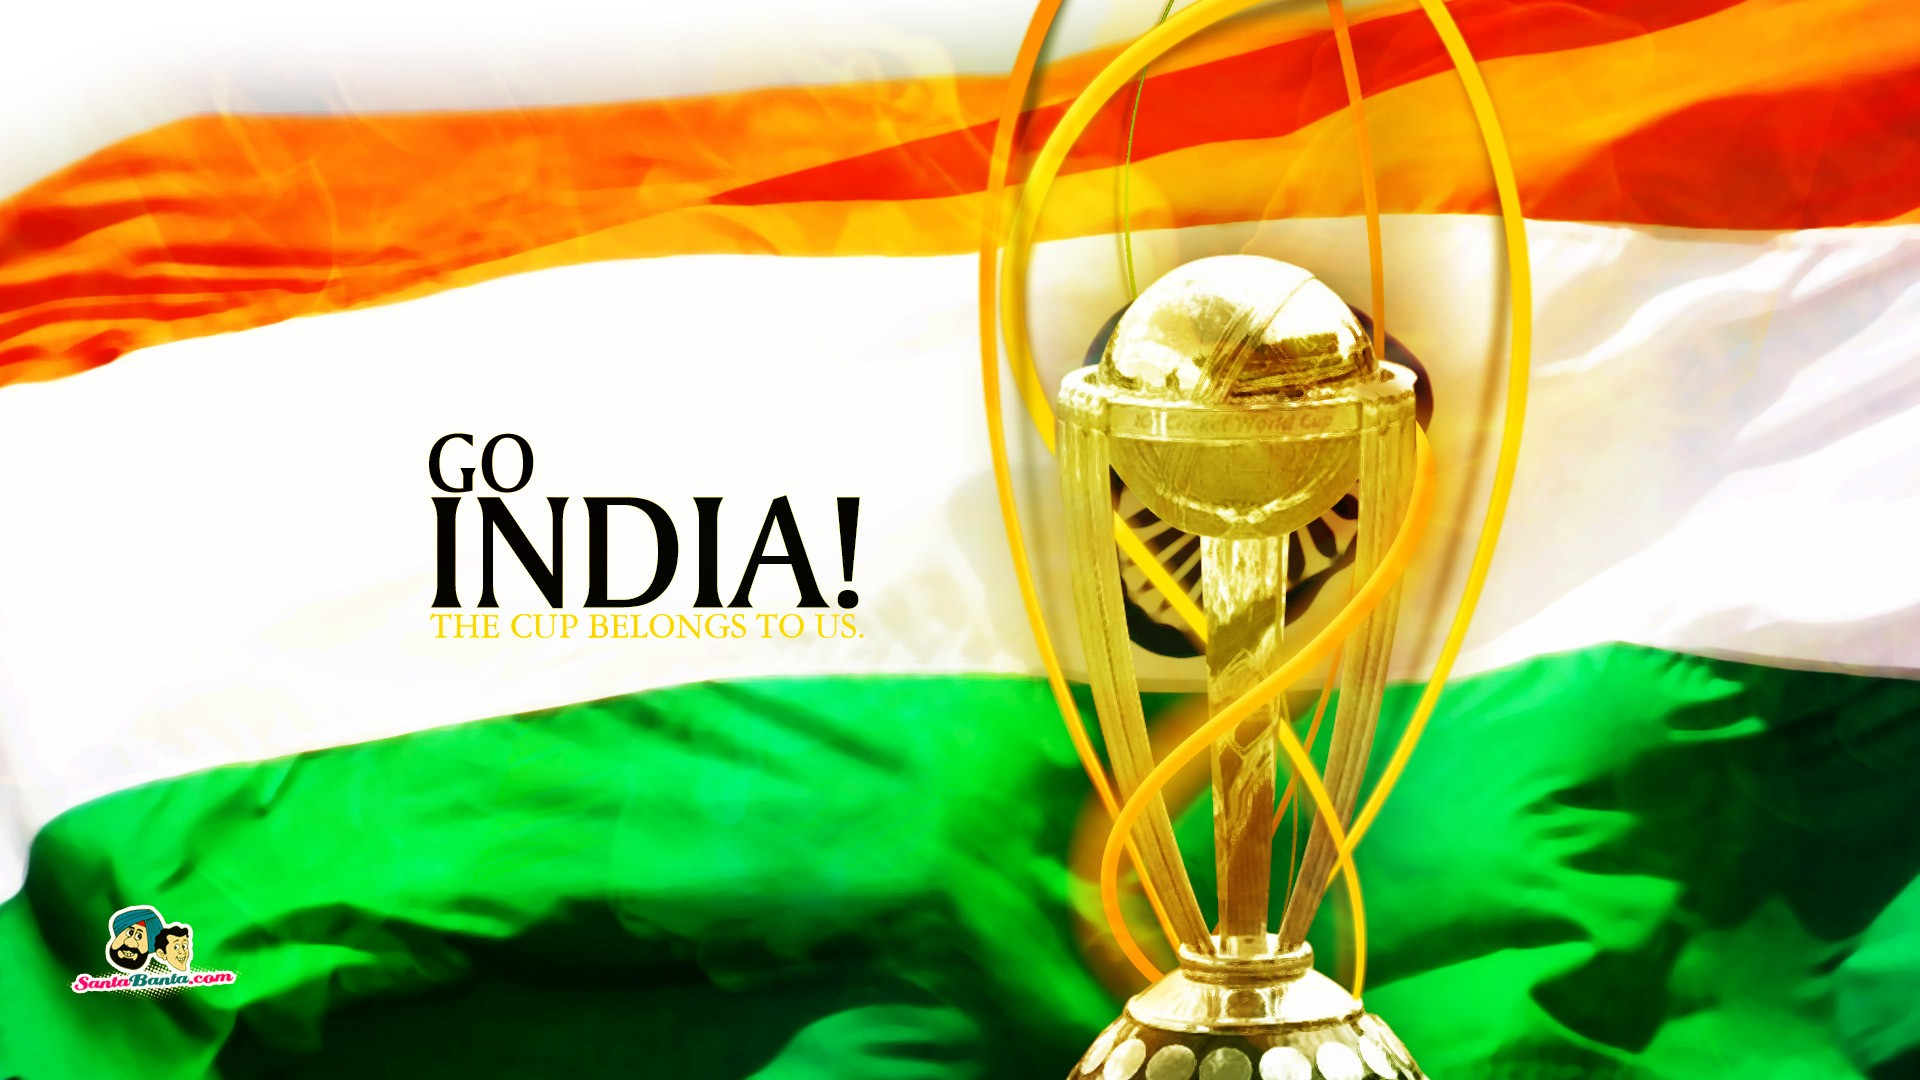 India Cricket Cup Wallpapers India Cricket Cup Myspace Backgrounds 1920x1080